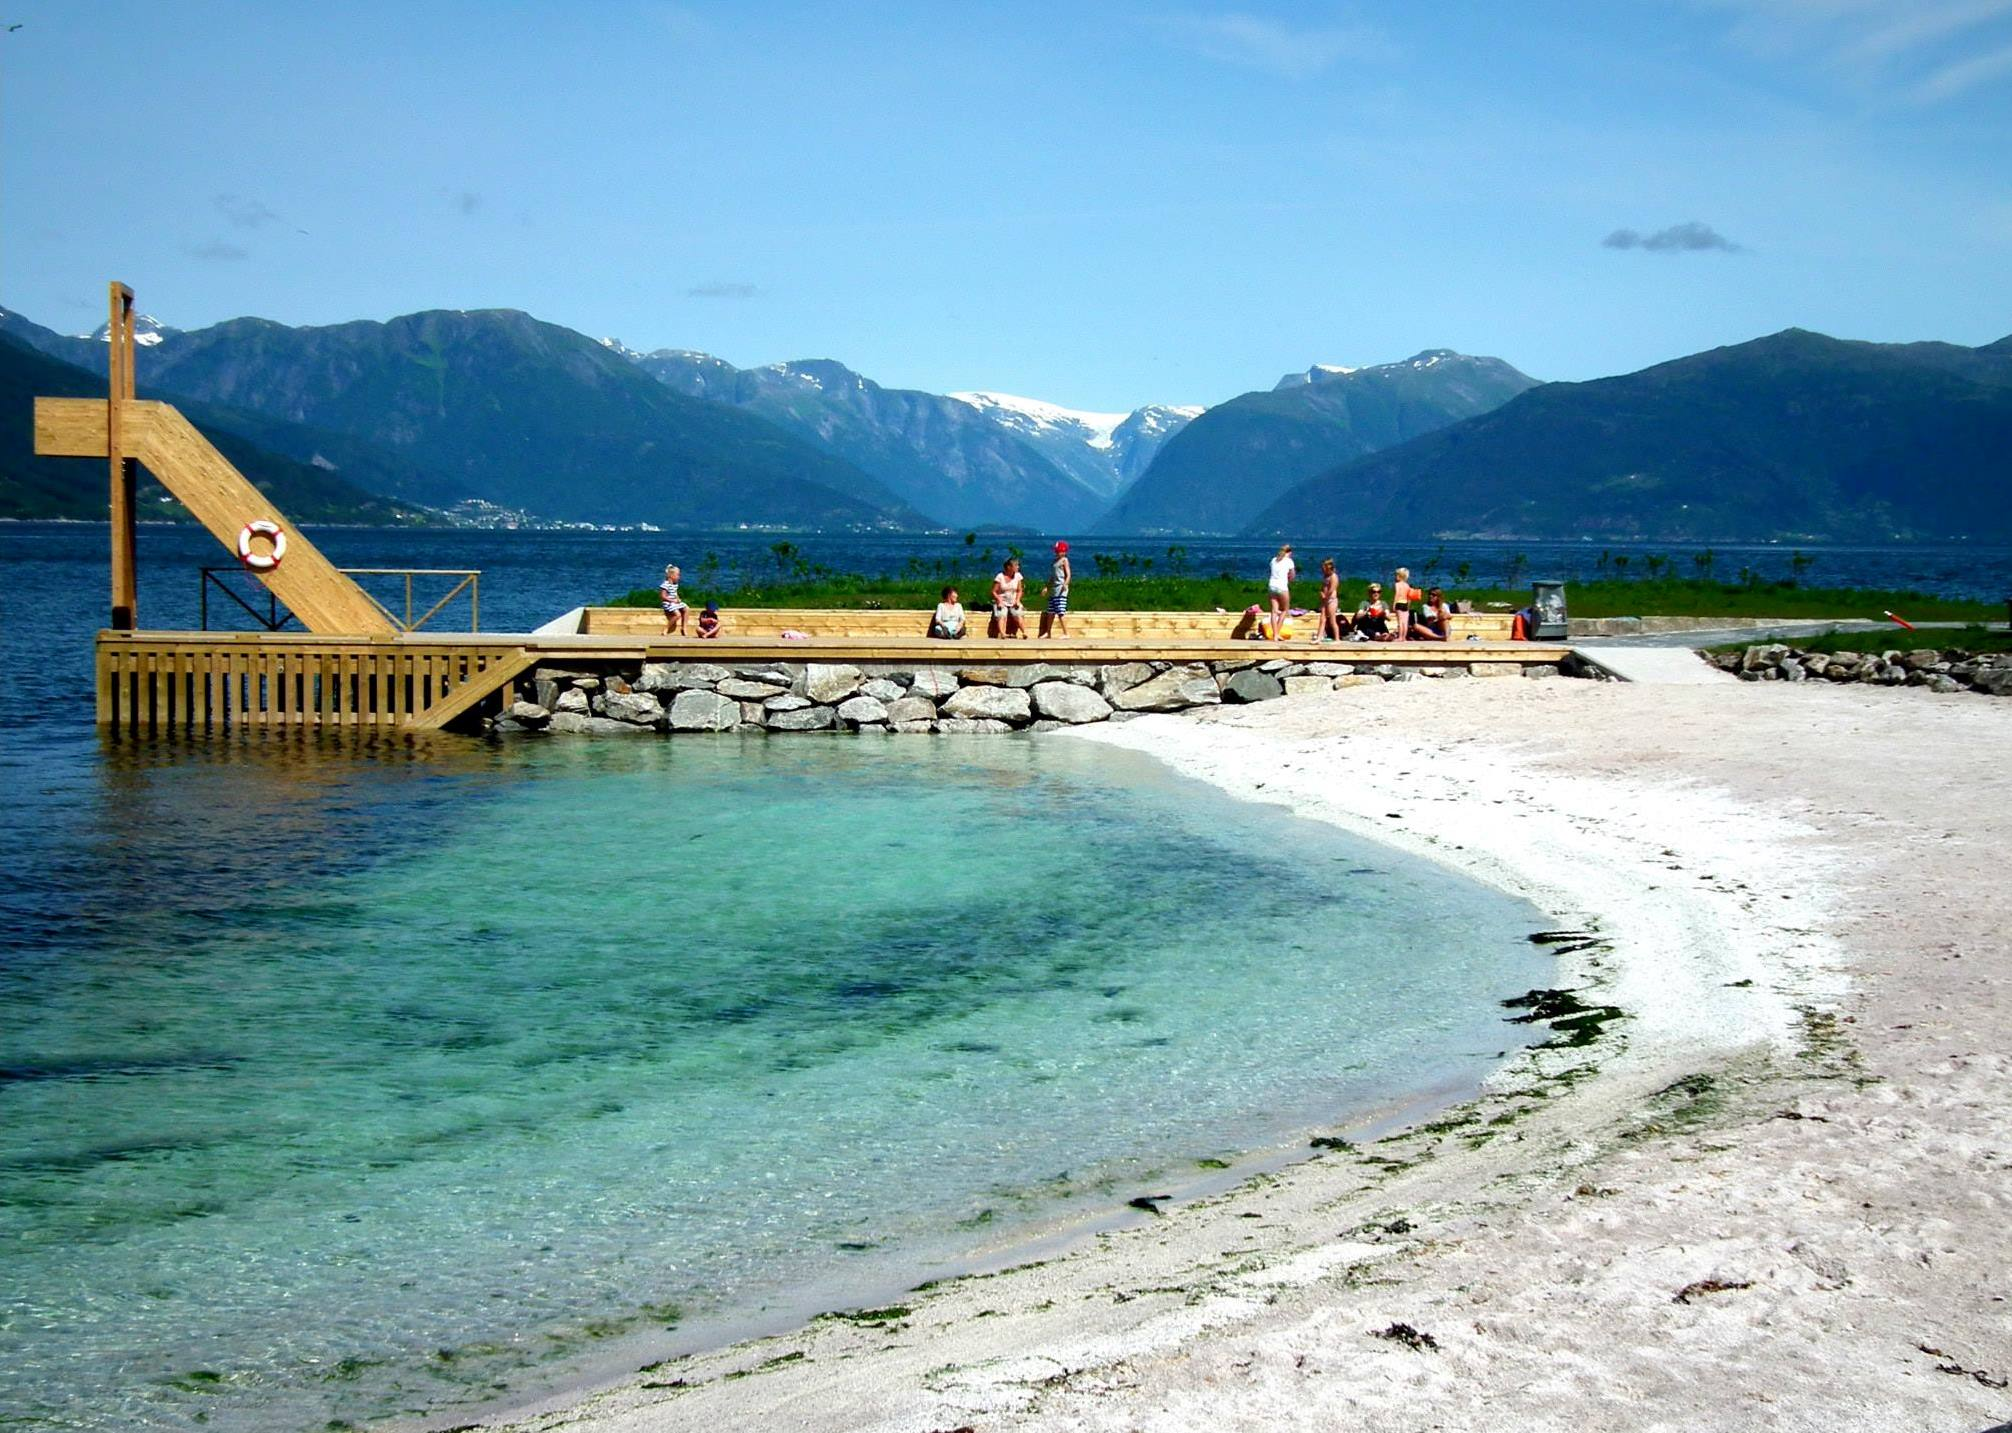 For children - Want to go for a swim or just hang out by the fjord? Down by the docks there is a beach and places to sit and enjoy the fjord view. If you ask us we can also point you in the direction of the arenas for soccer, beach volleyball and playground!